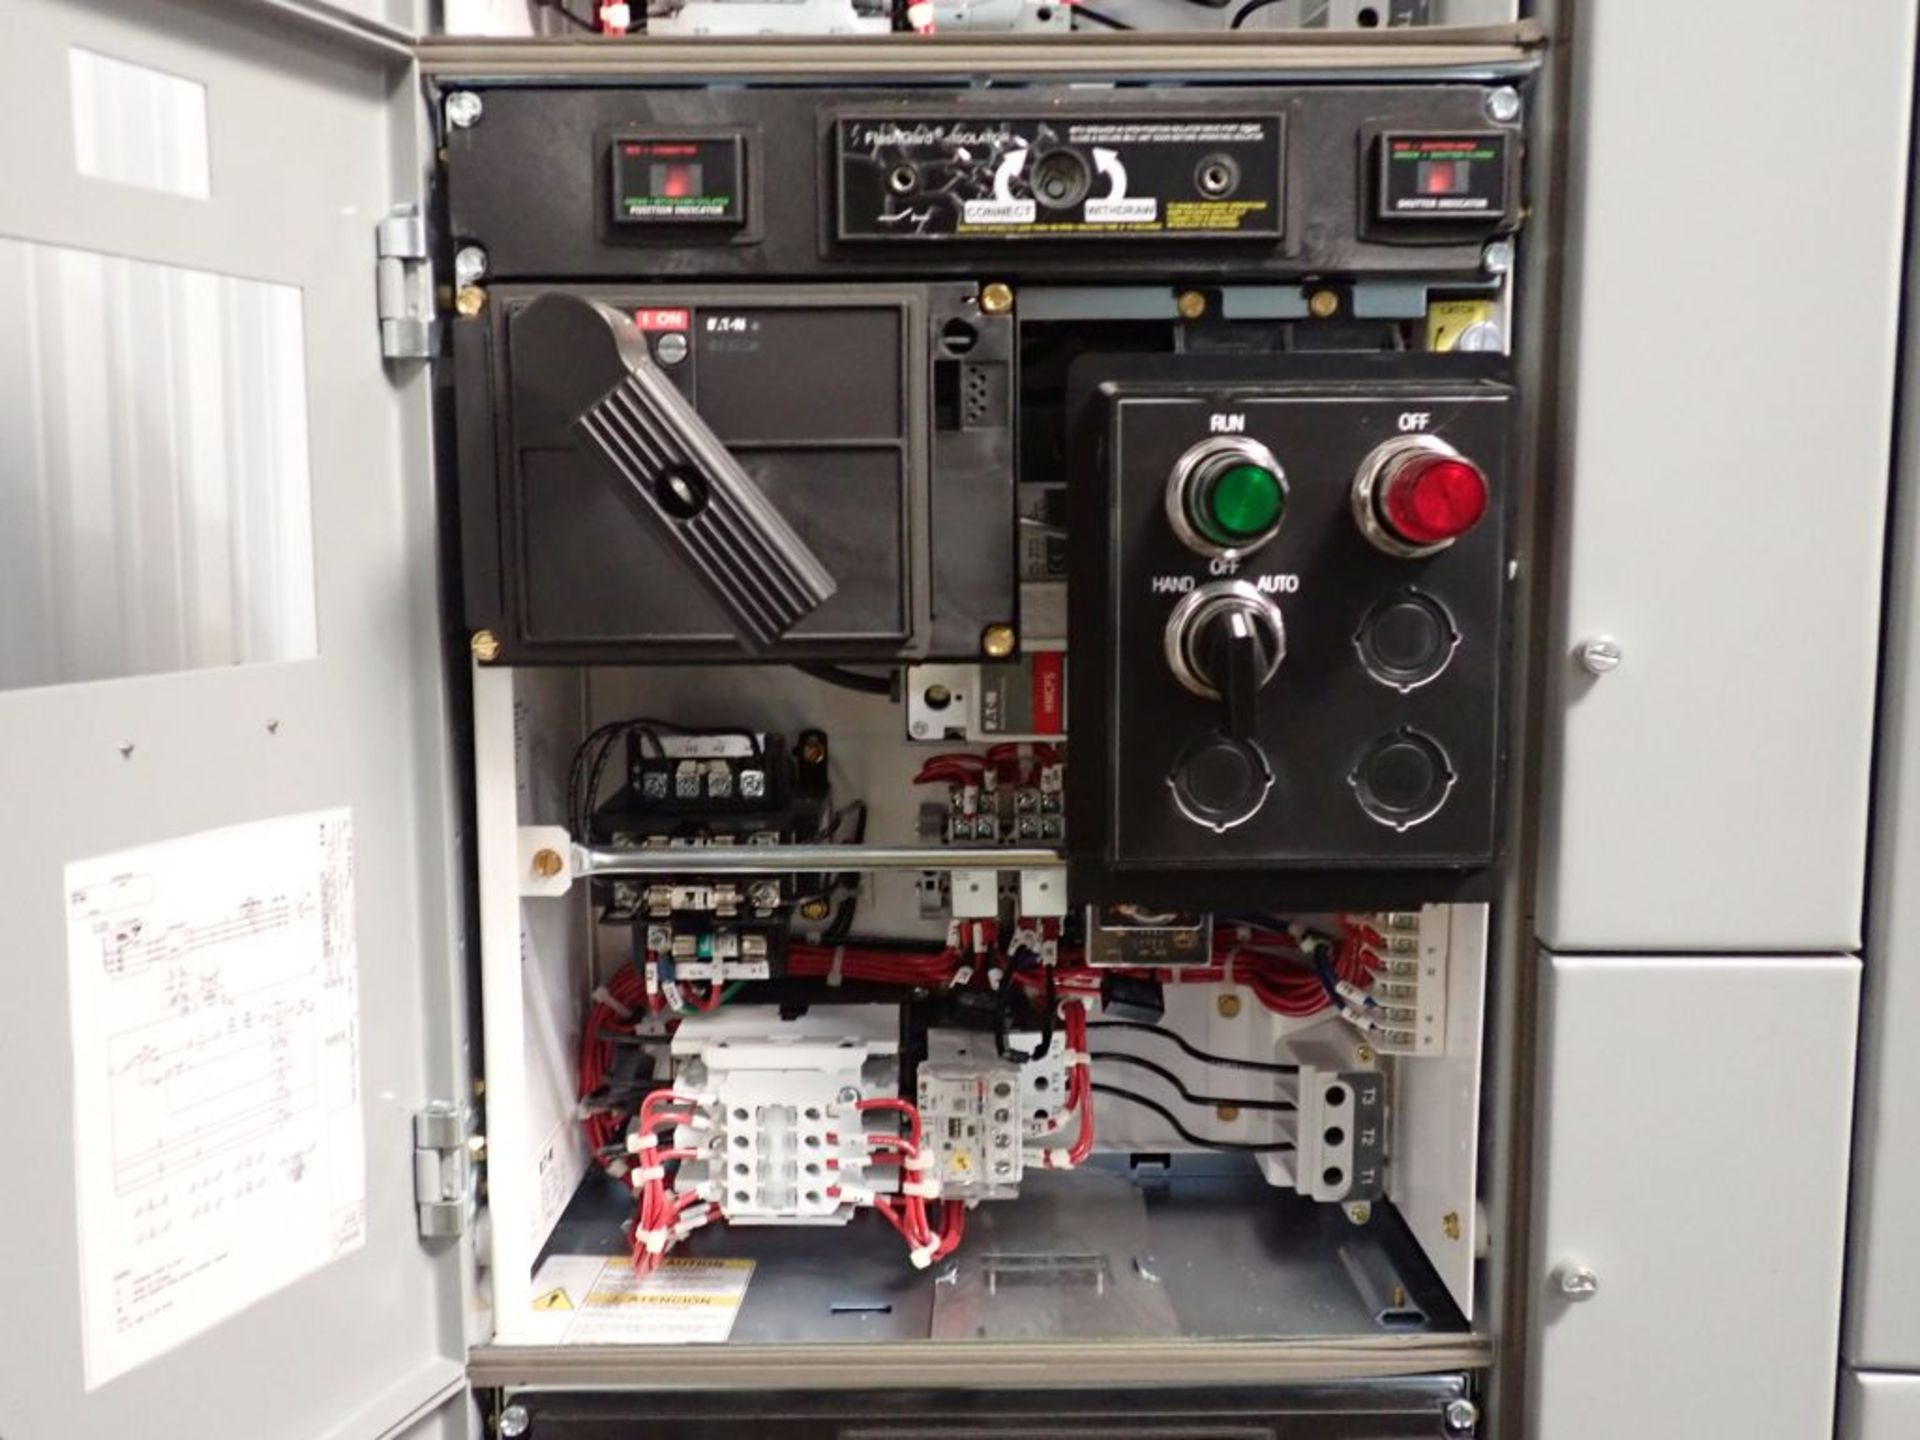 Eaton Freedom 2100 Series Motor Control Center | (11) F206-30A-10HP; (5) F206-15A-10HP; (1) SVX900- - Image 16 of 102